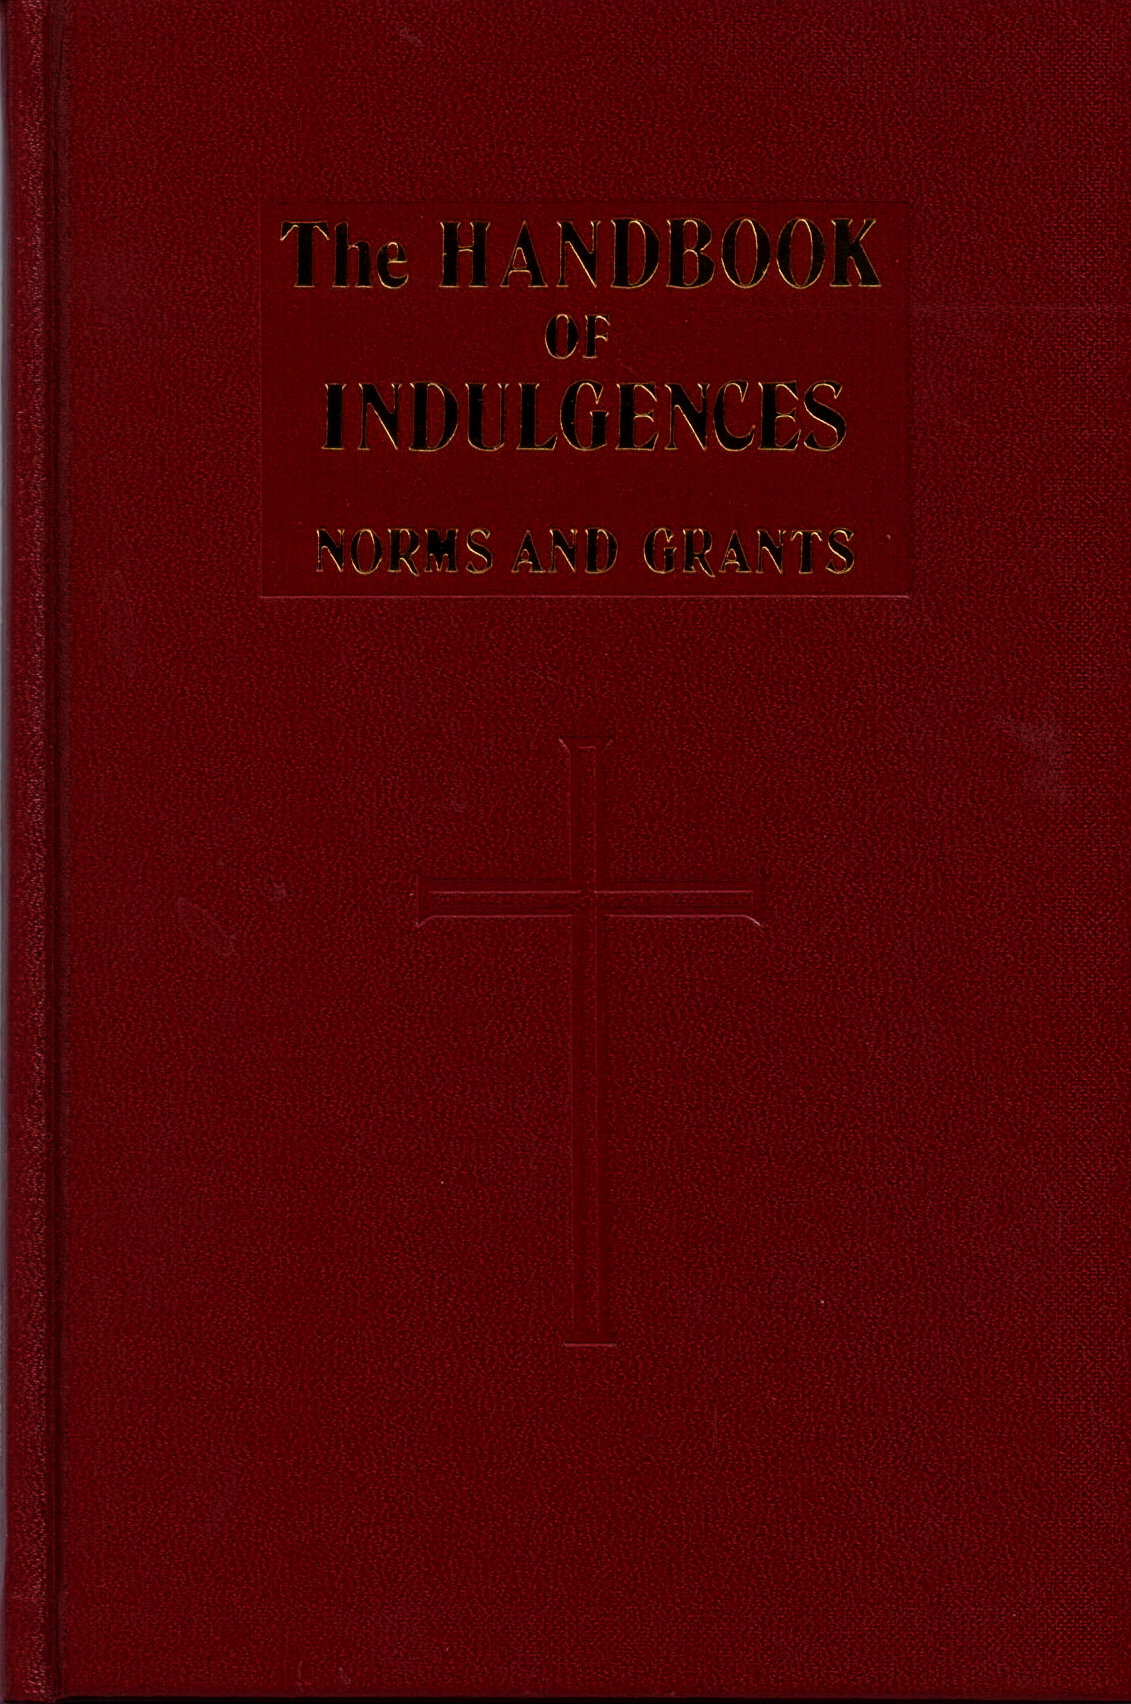 The Handbook of Indulgences #585/22